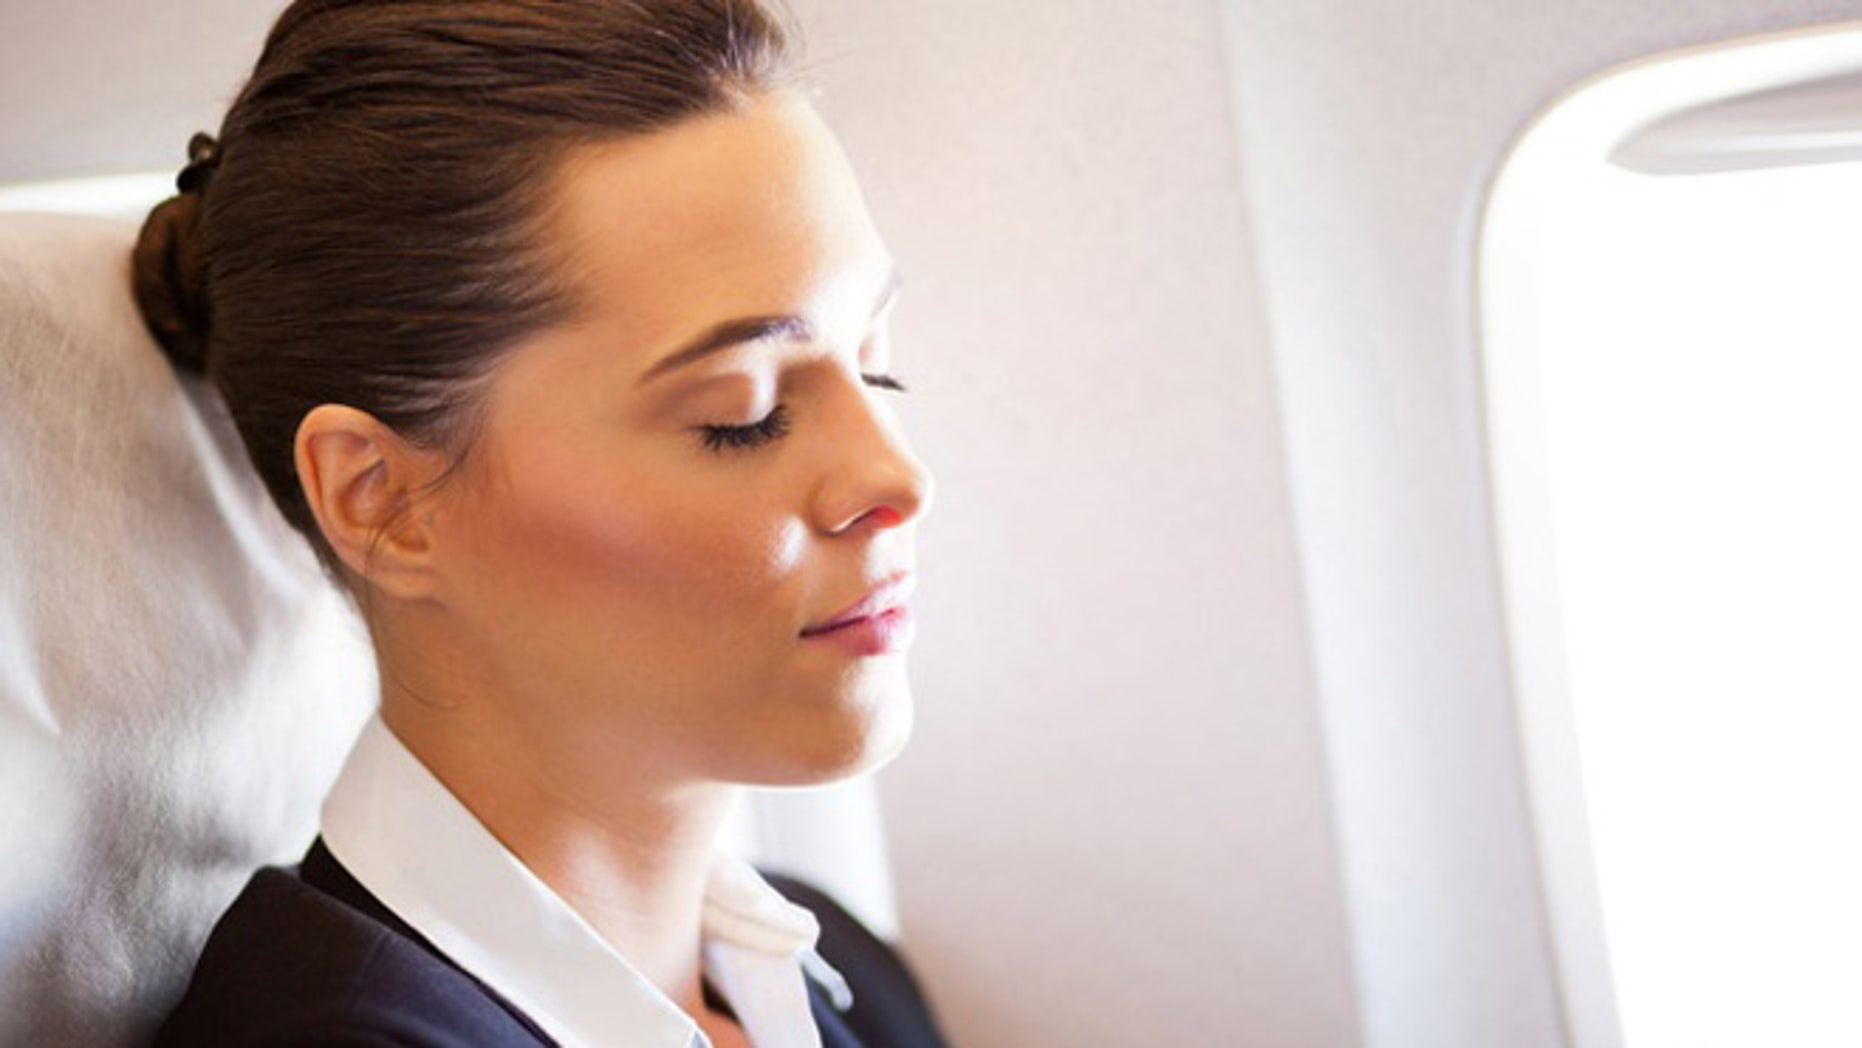 Relaxation techniques—such as visualizing your destination—can ease the fear of flying.